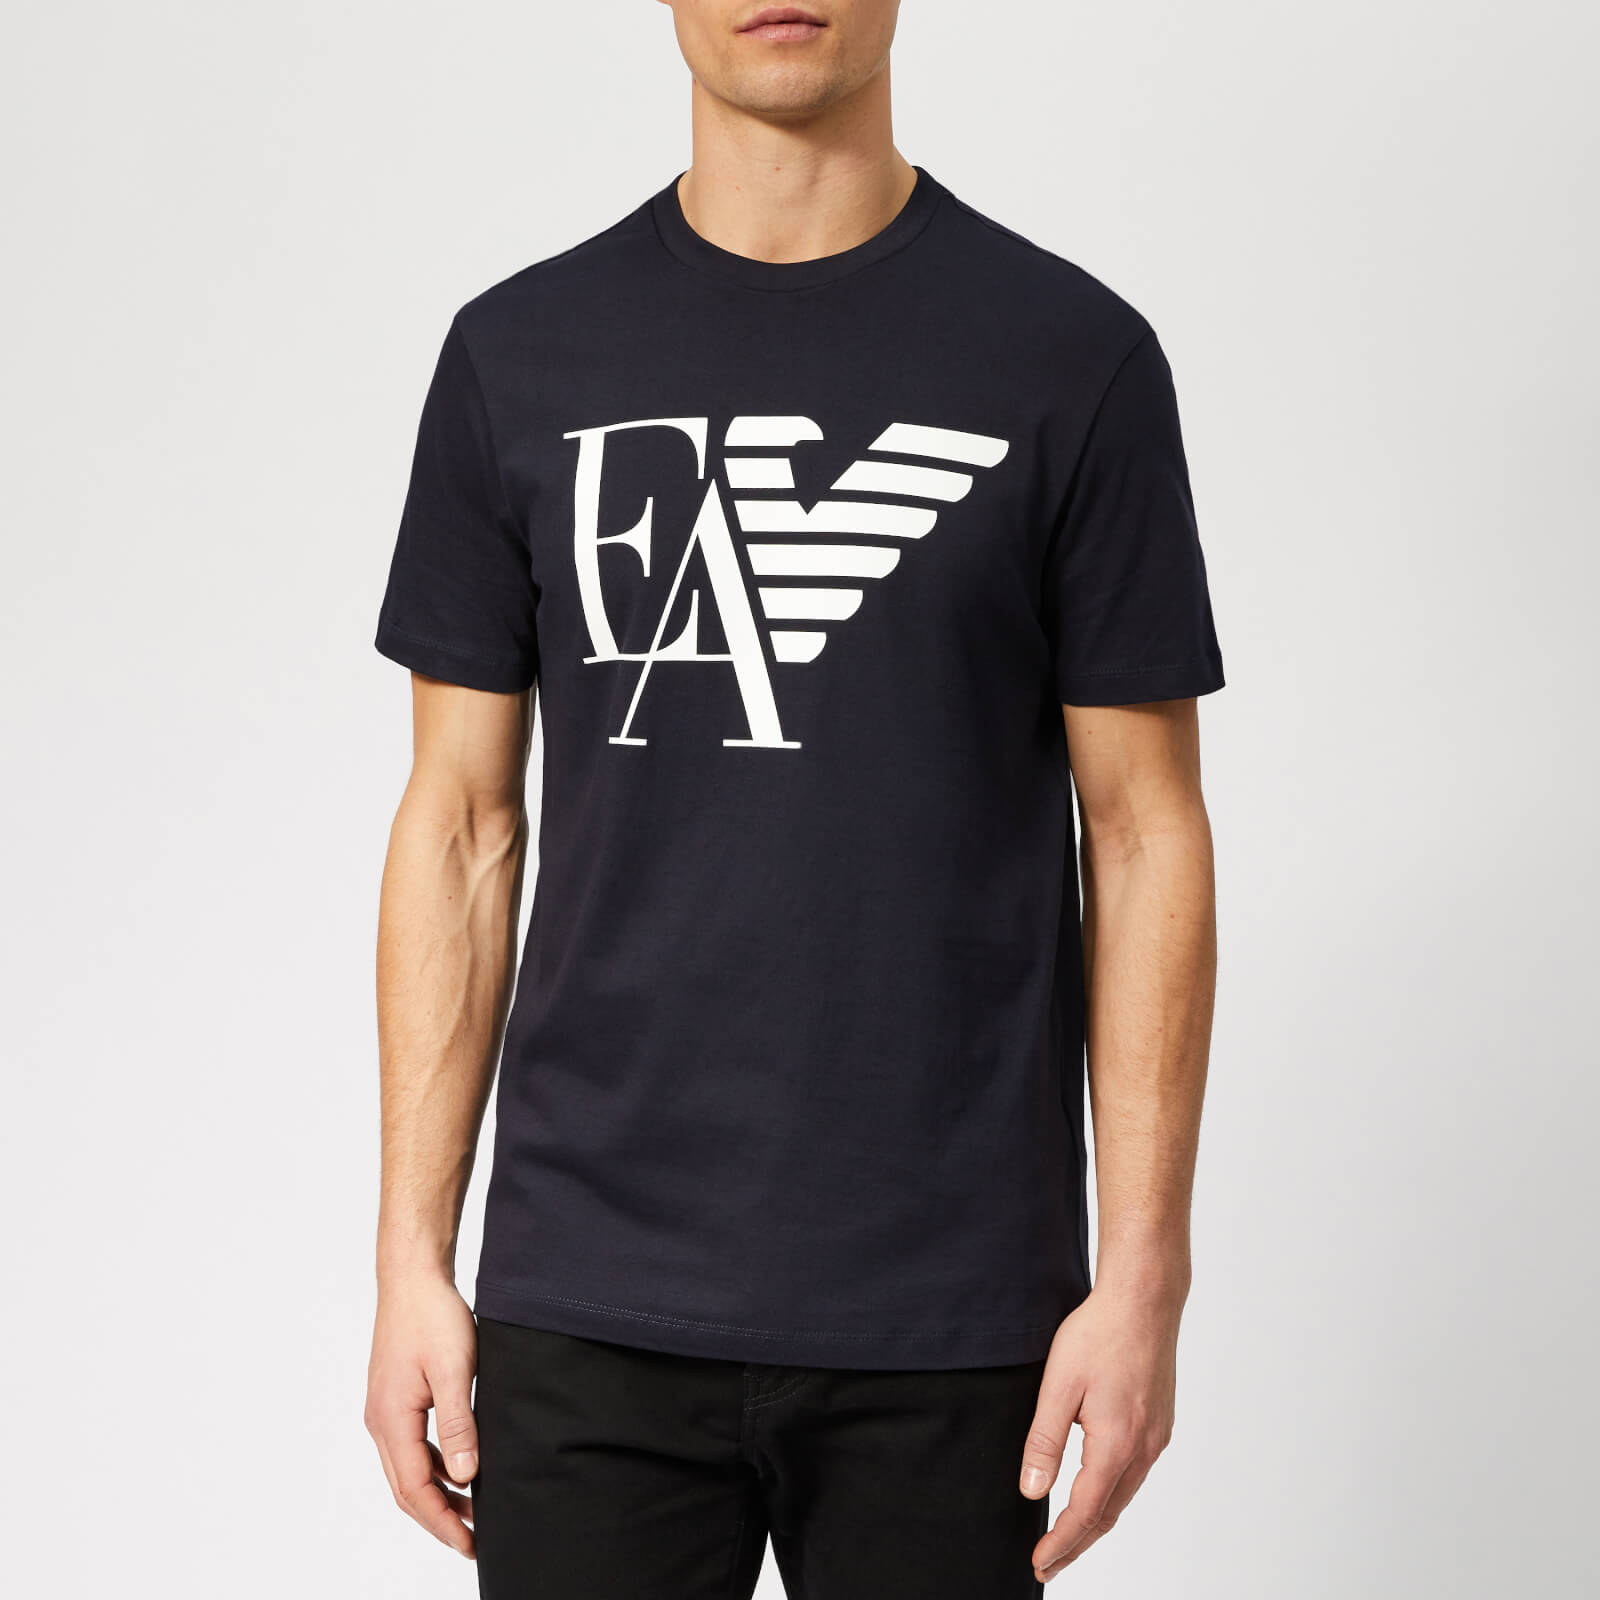 2a71c3870 Emporio Armani Men's EA and Eagle Logo T-Shirt - Blue Navy - Free UK  Delivery over £50